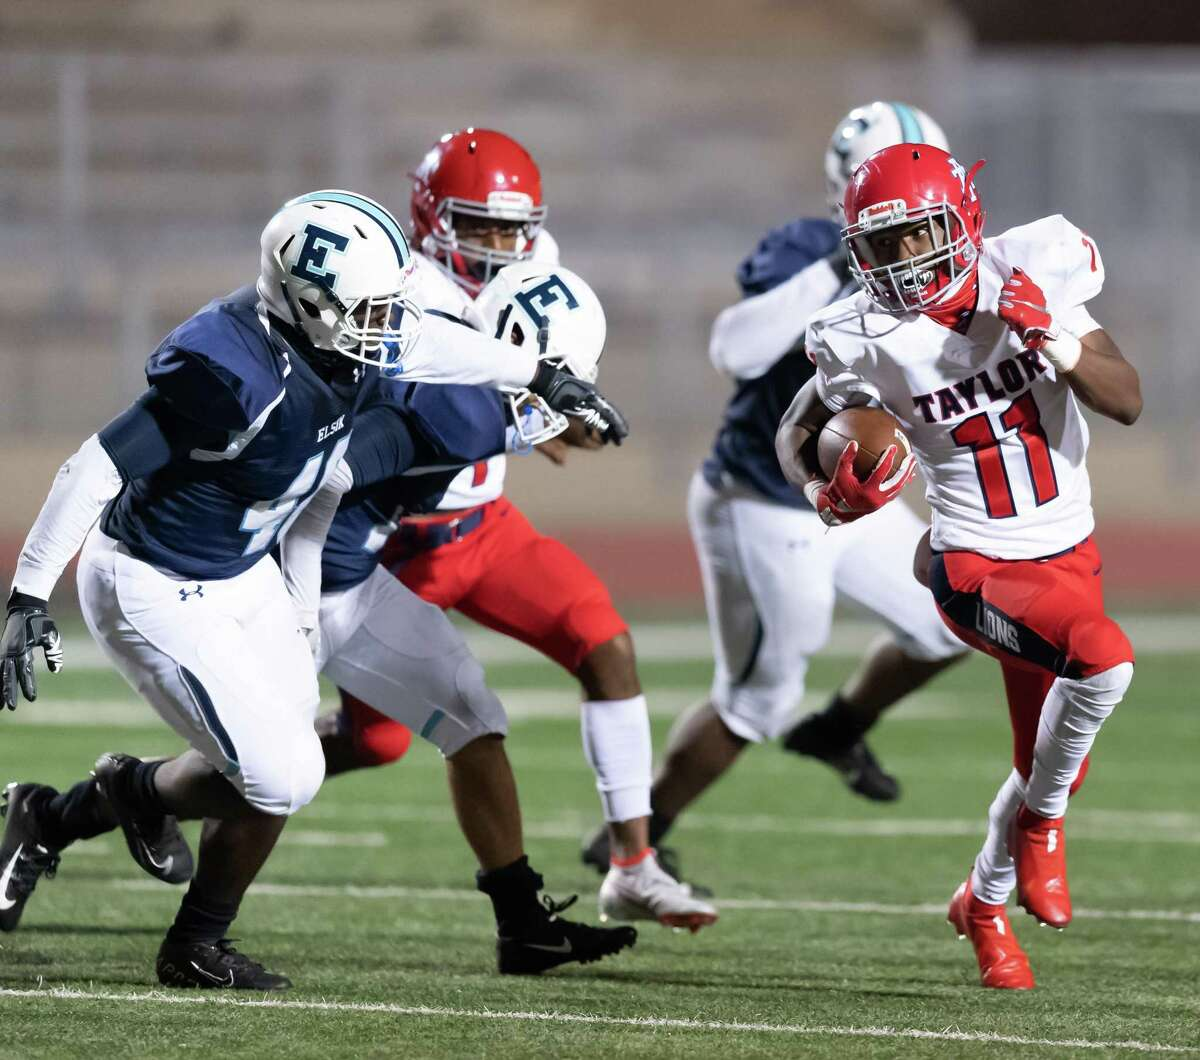 Danyren Williams (11) of the Alief Taylor Lions runs around left end in the second half against the Alief Elsik Rams during a High School football game on Friday, October 16, 2020 at Crump Stadium in Houston Texas.